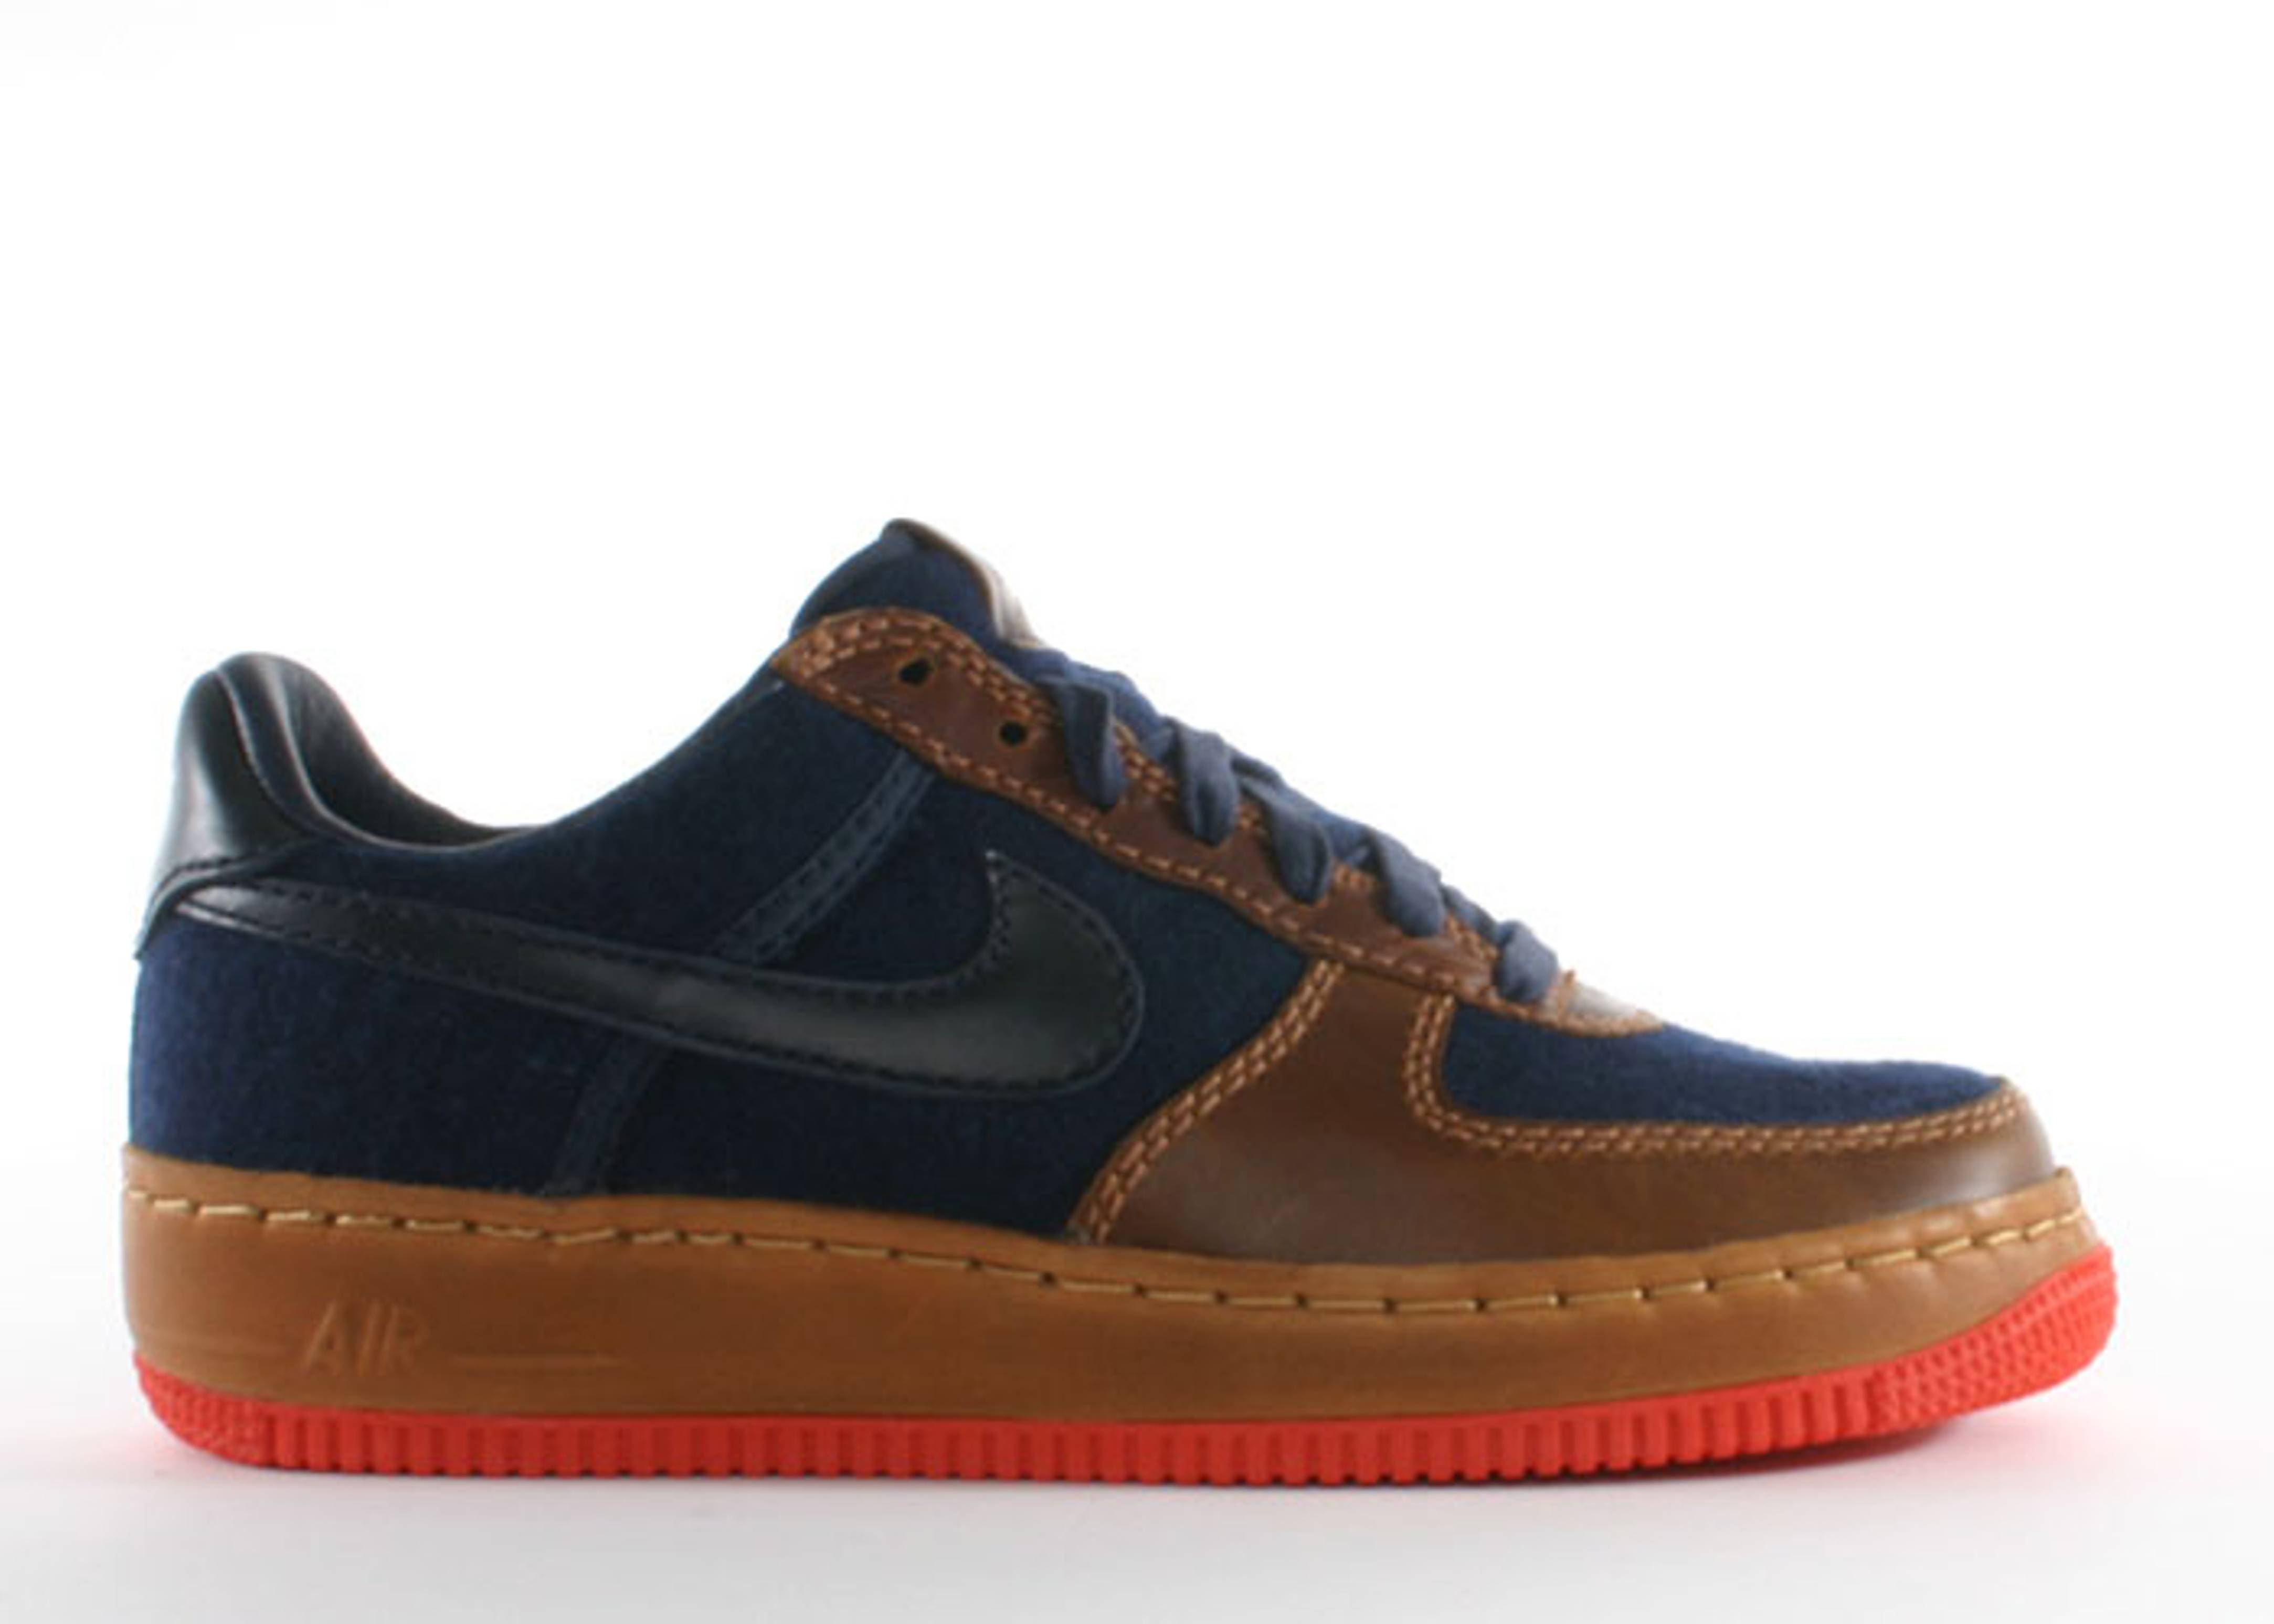 w's air force 1 low insideout